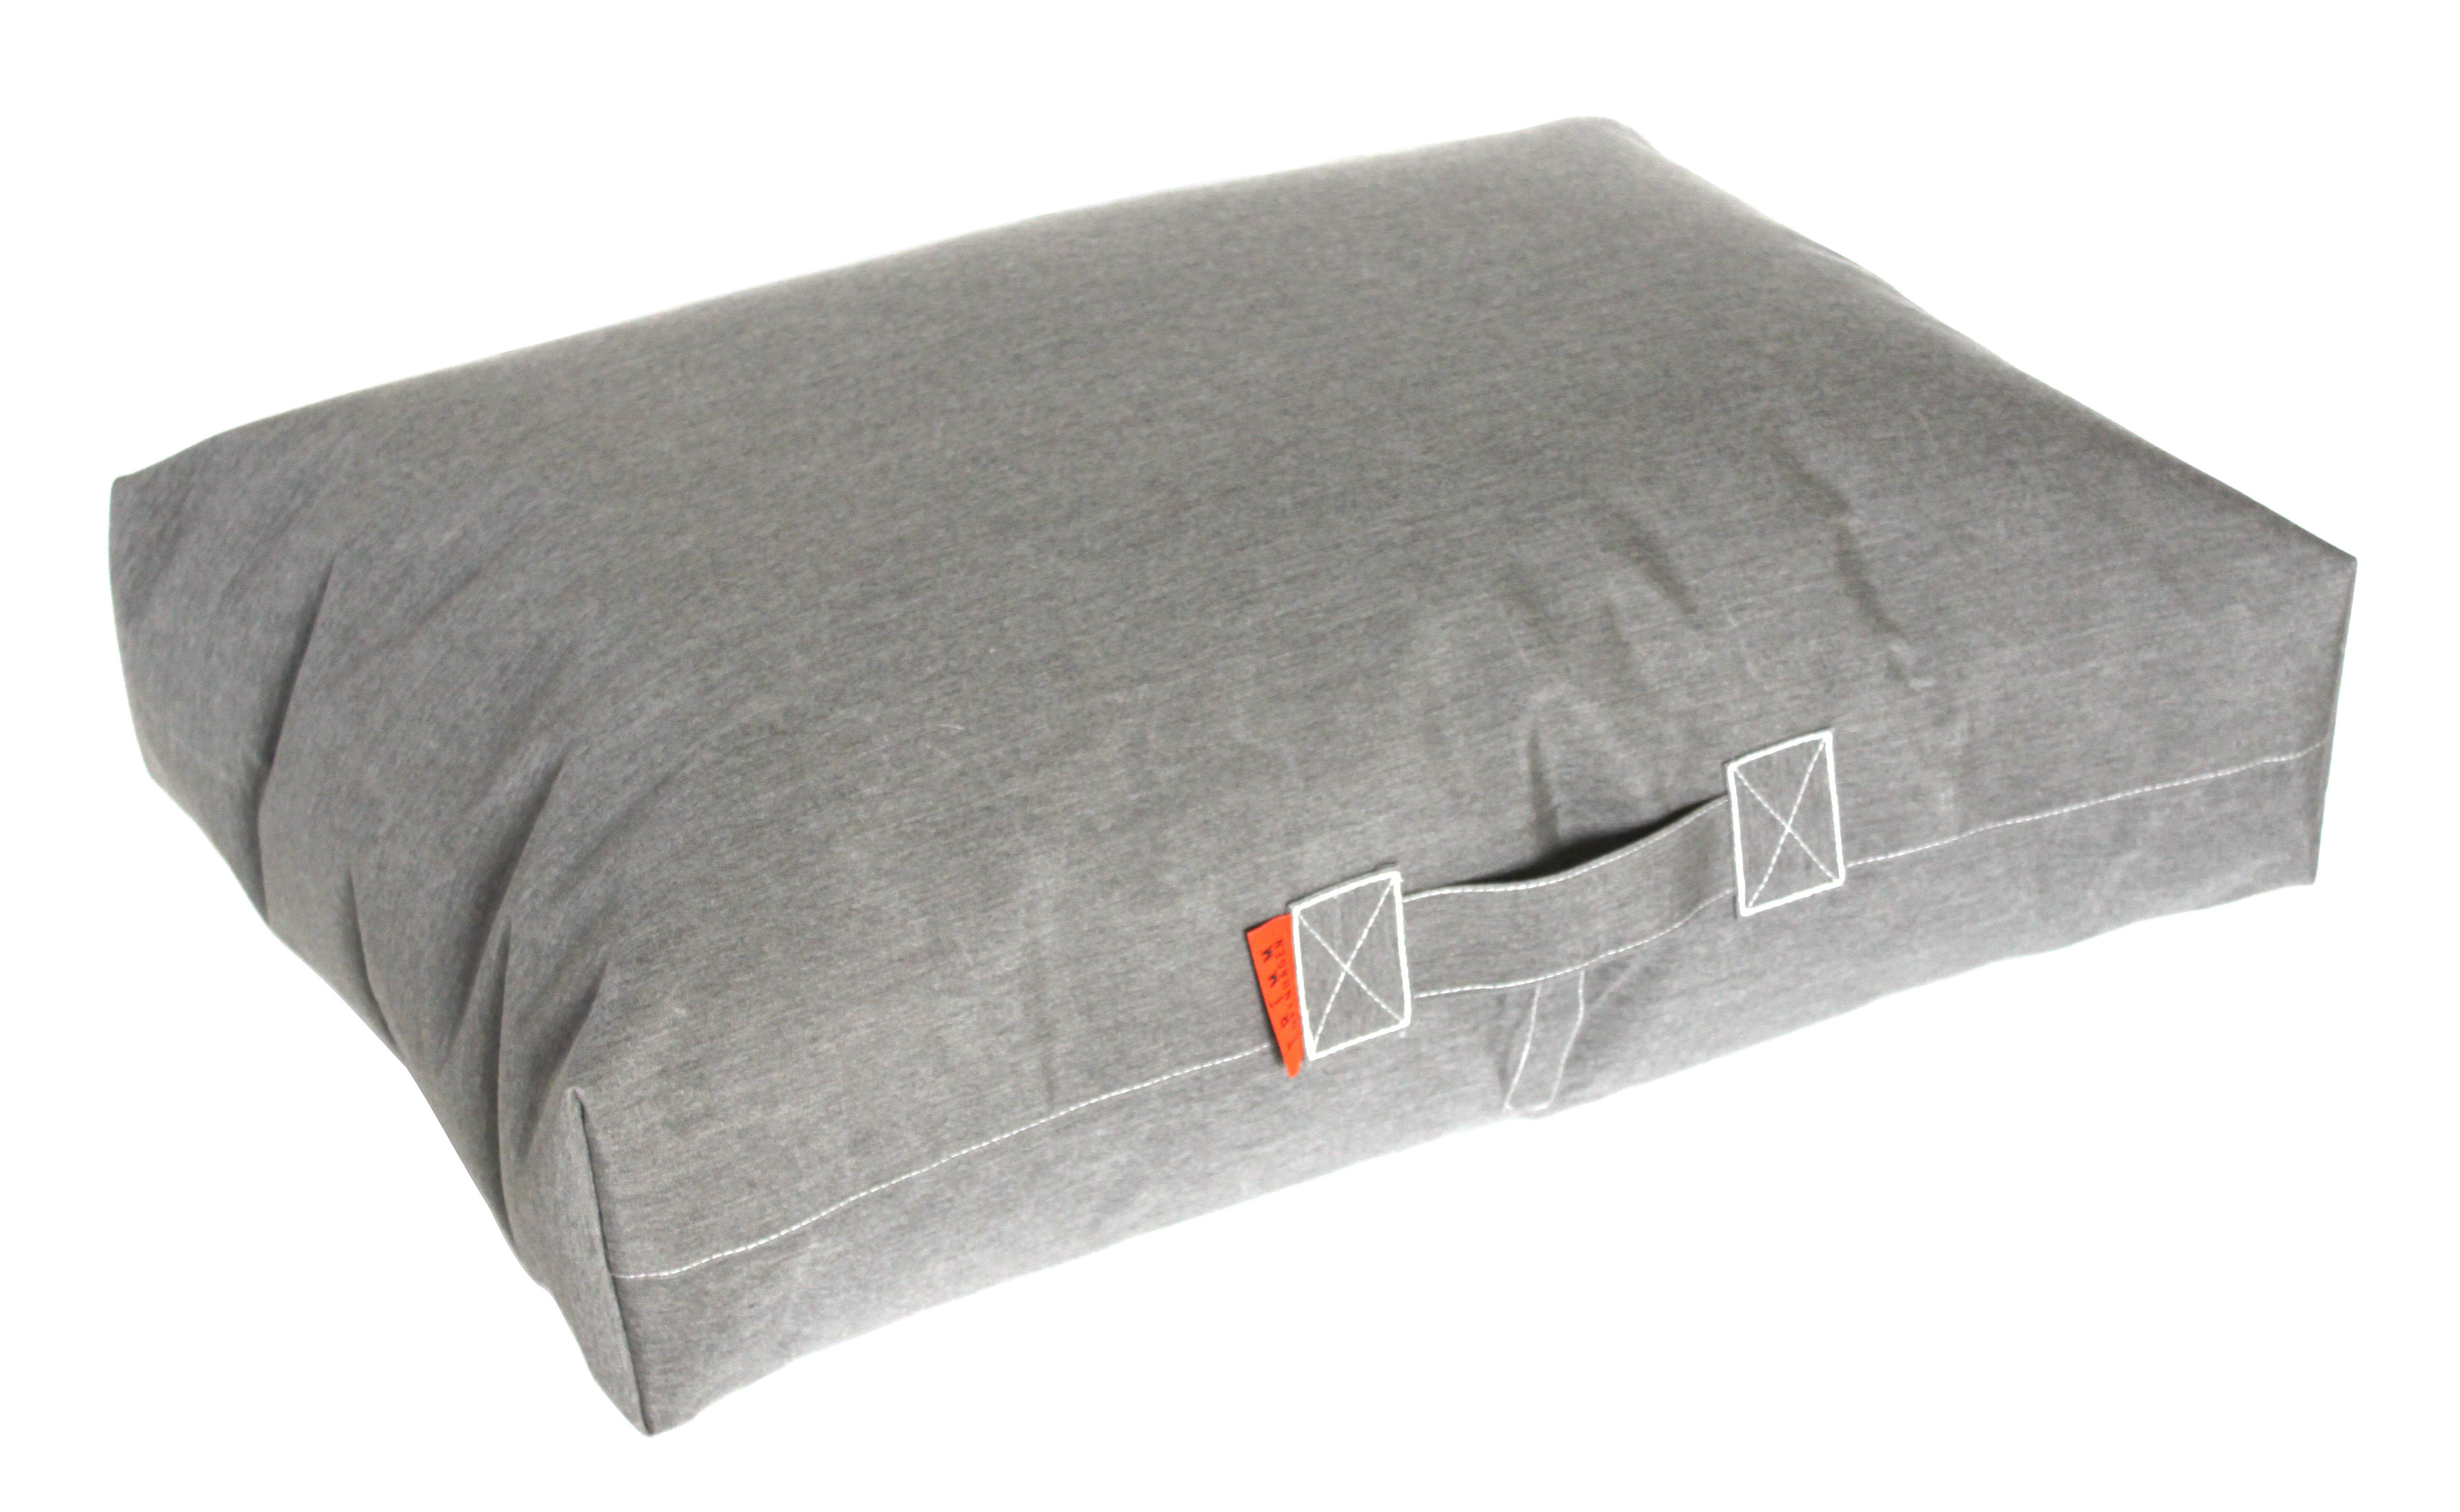 coussin de sol felix 80 x 56 cm gris trimm copenhagen. Black Bedroom Furniture Sets. Home Design Ideas